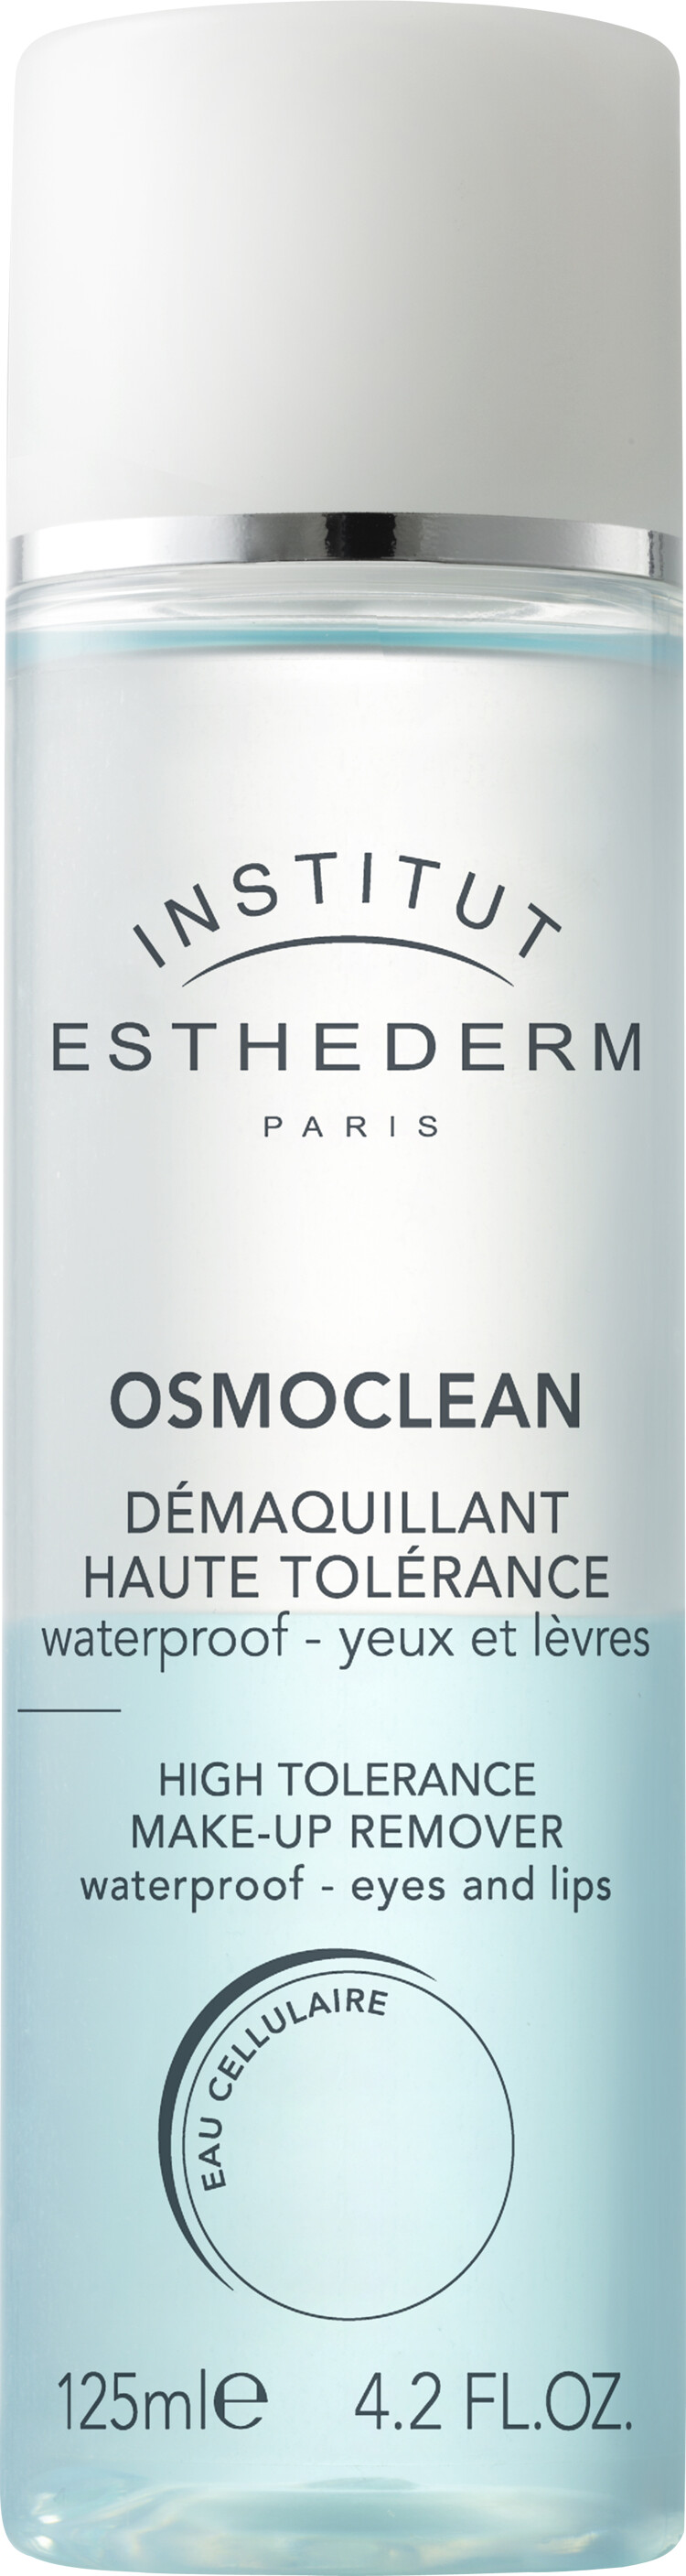 Institut Esthederm Osmoclean High Tolerance Eye Make Up Remover - Eyes and Lips 125ml